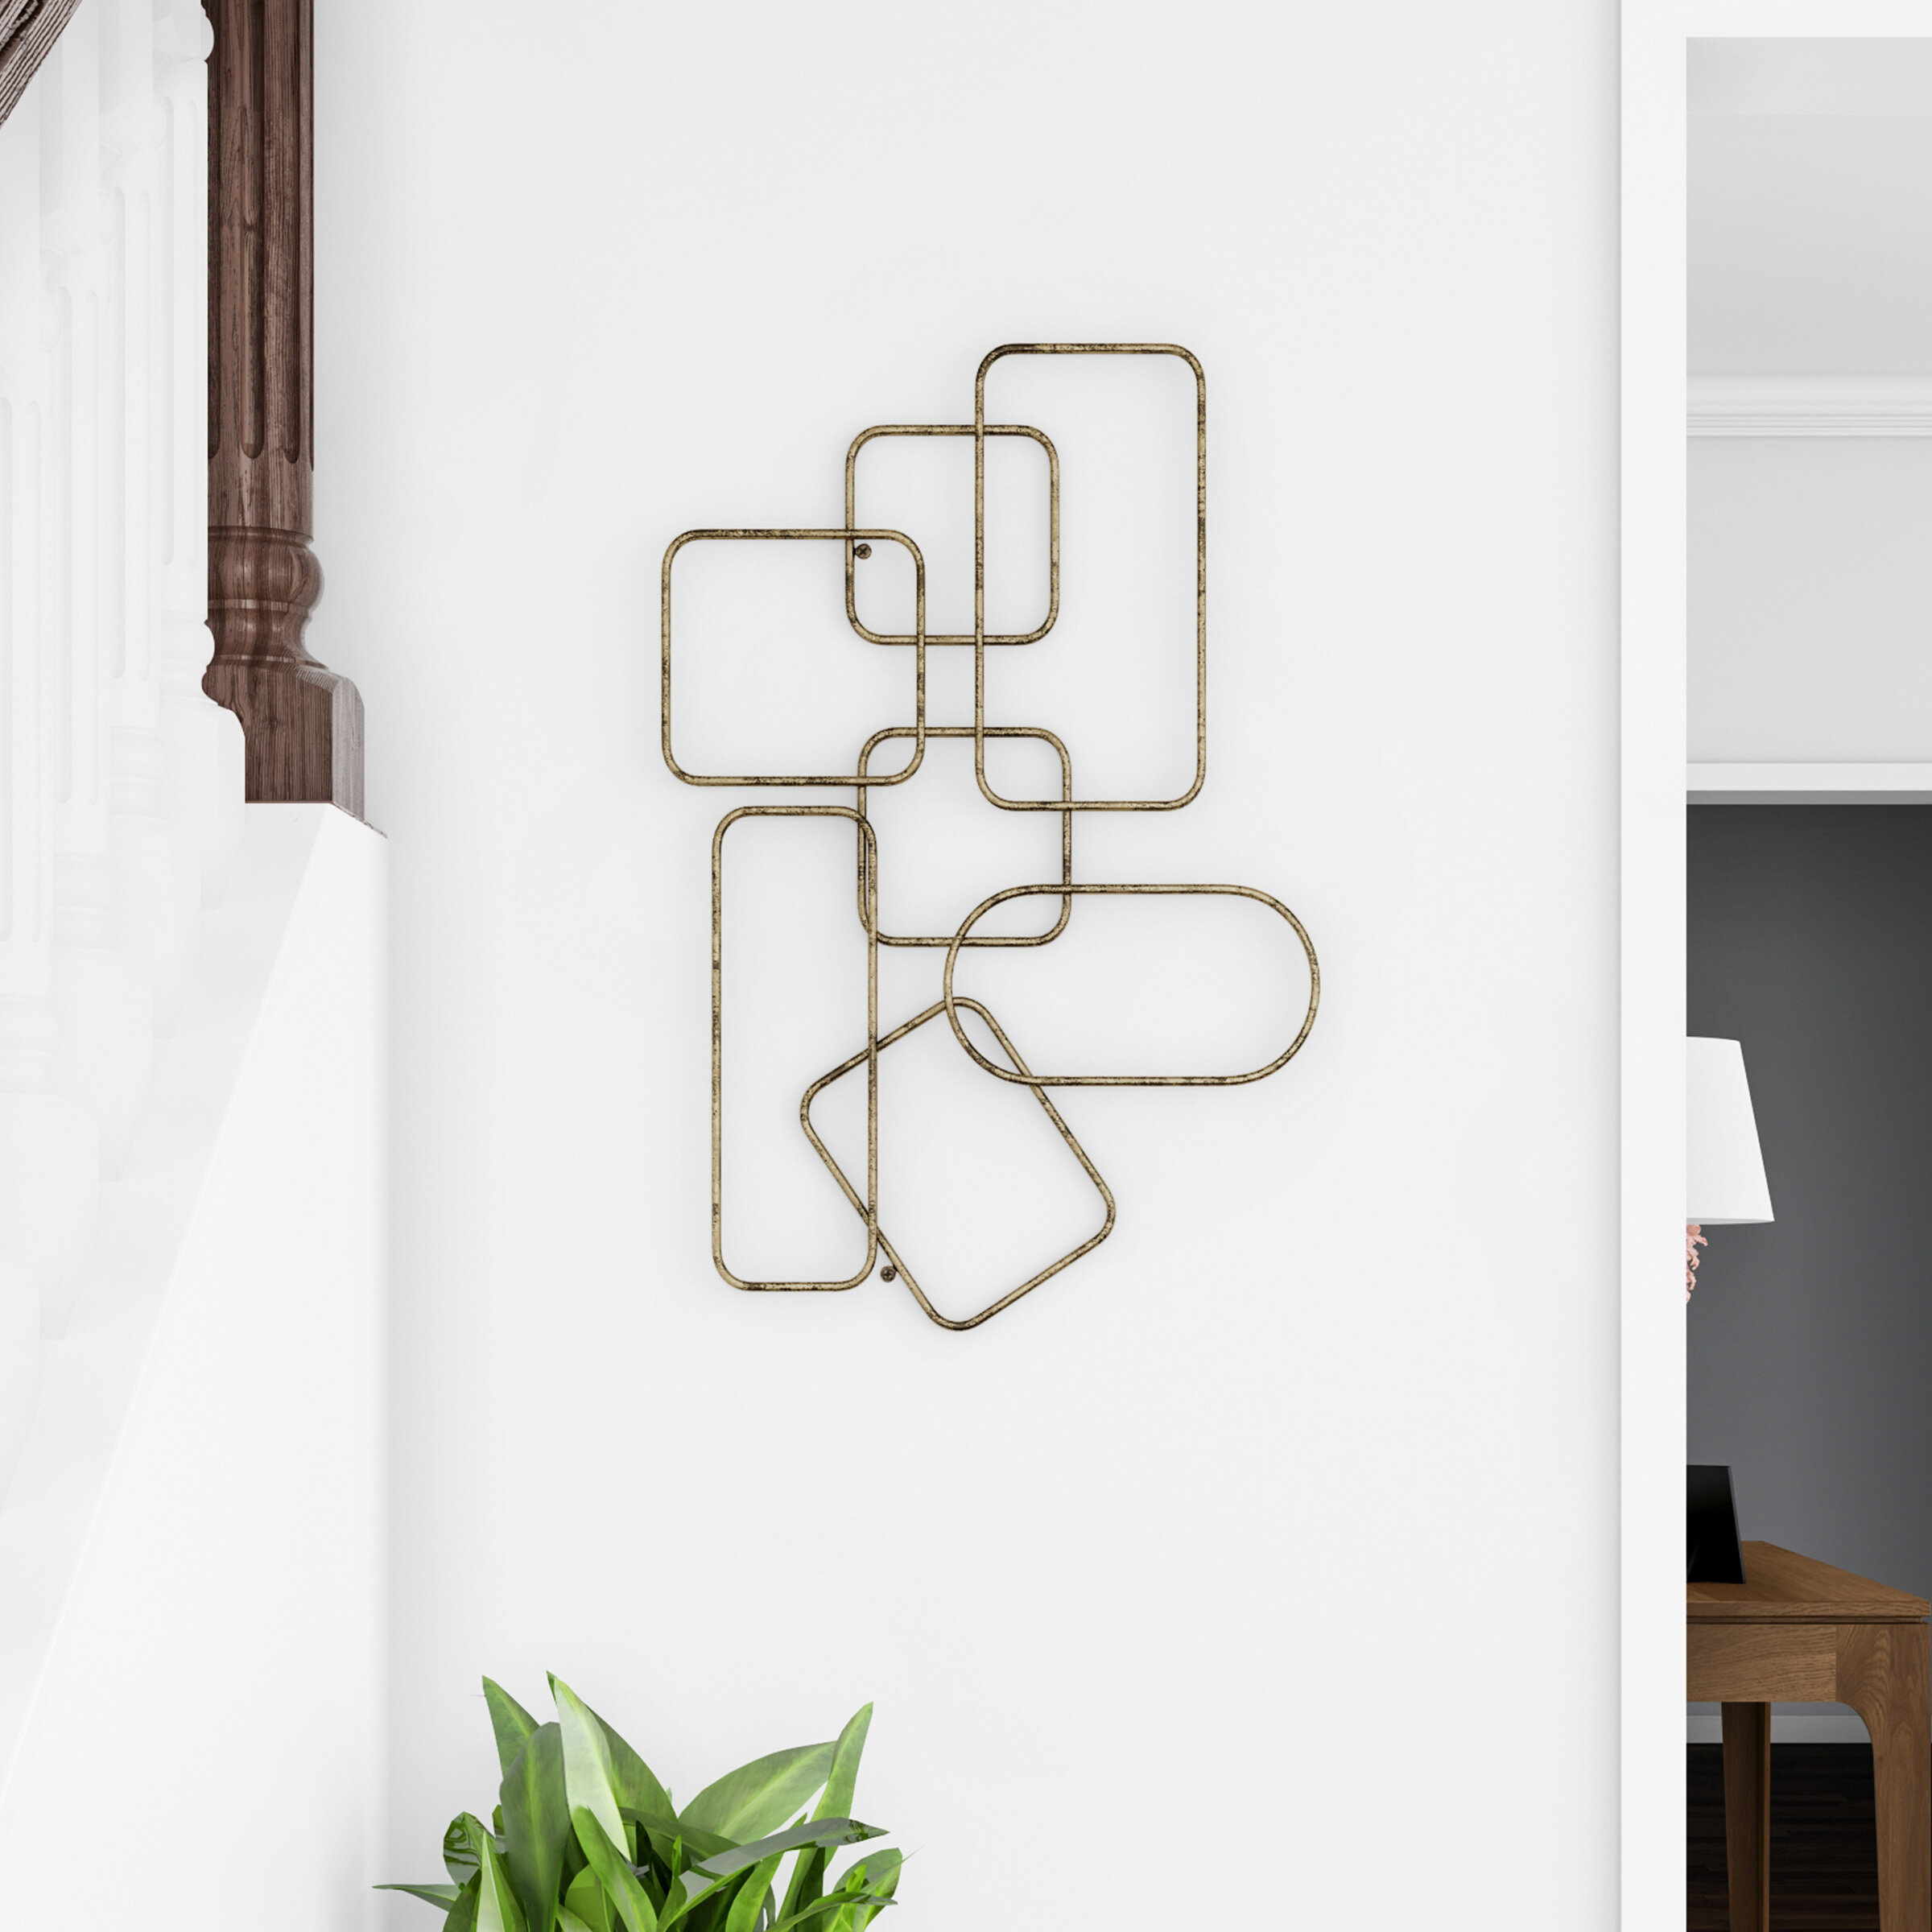 Interlocking Squares Metal Wall Décor Regarding Rings Wall Decor By Wrought Studio (View 16 of 30)